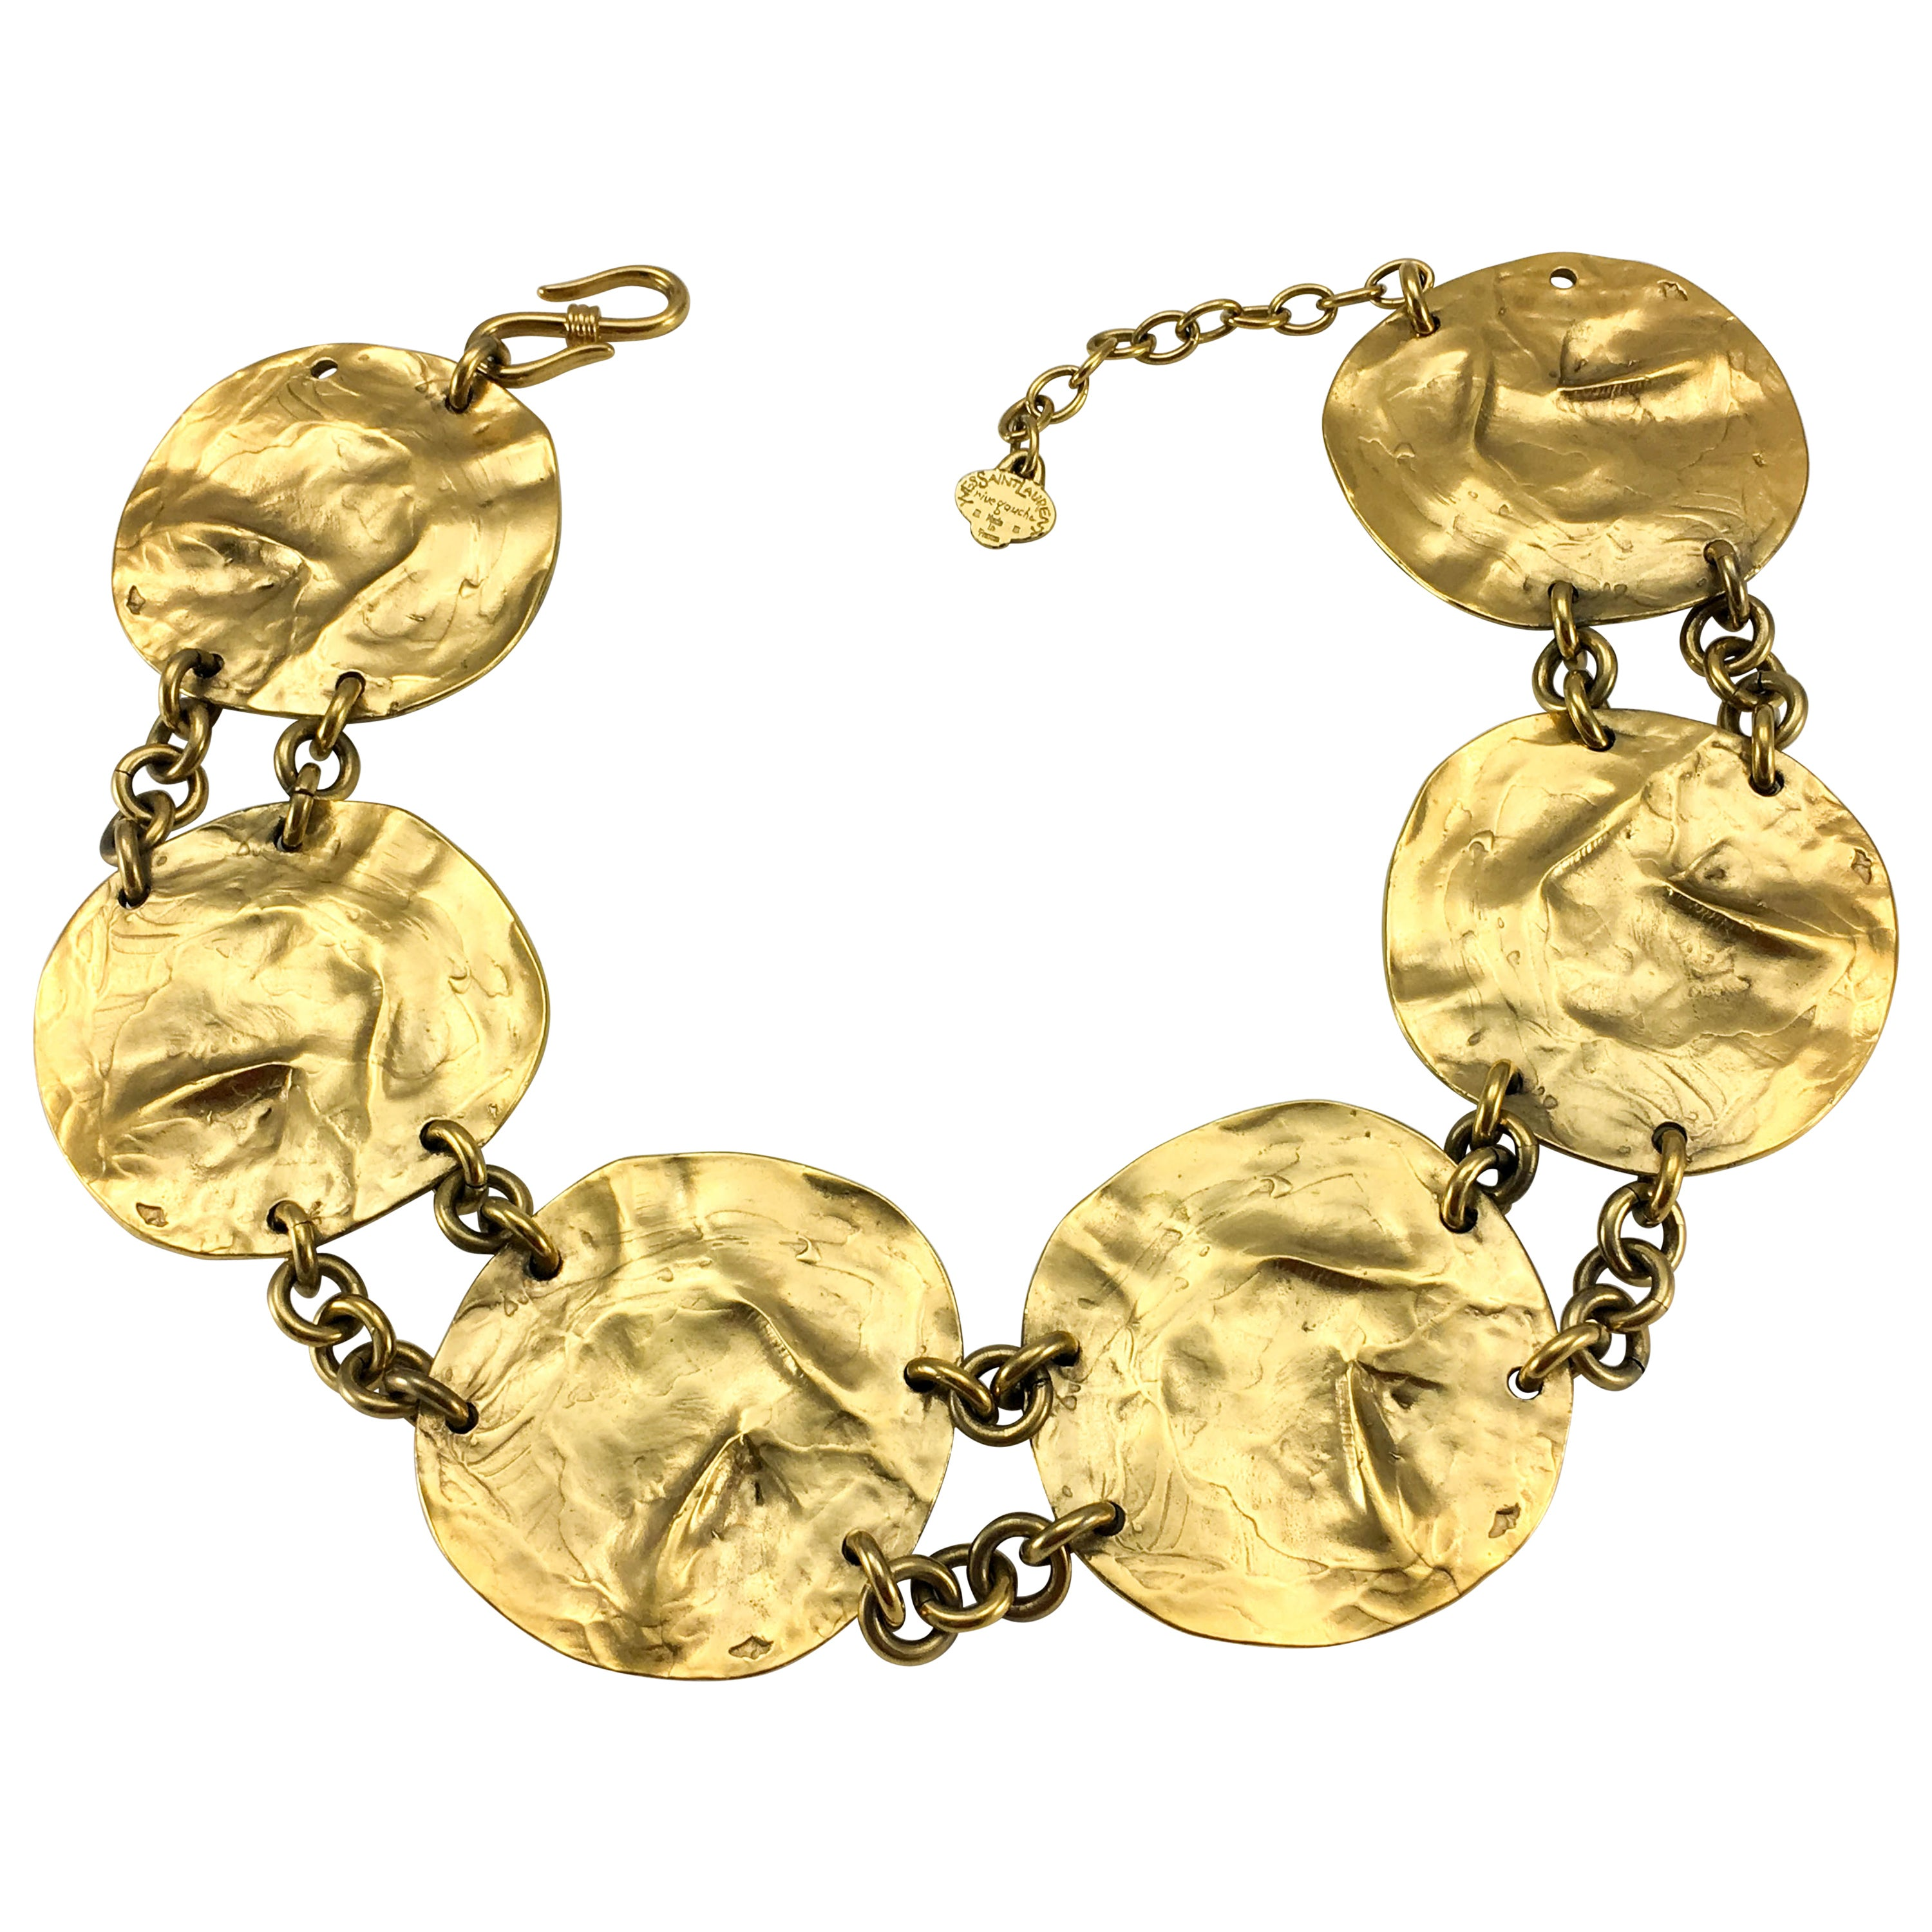 6e3ae3a115e Yves Saint Laurent by Robert Goossens Gold-Plated Disk Necklace, 1989 at  1stdibs